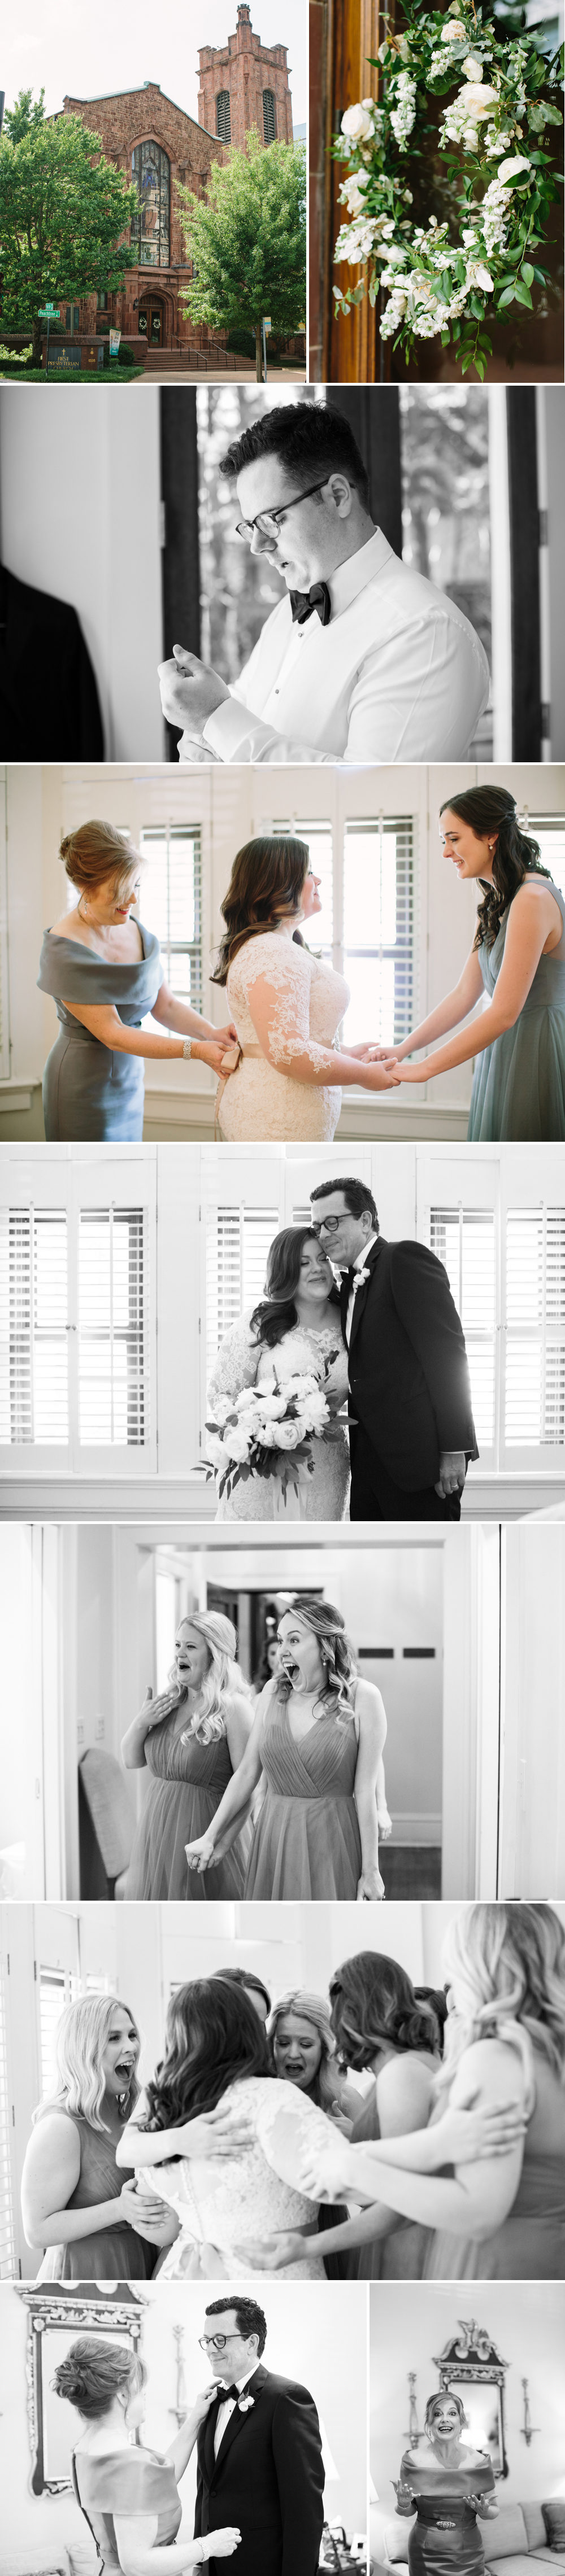 Nashville_Wedding_Photographers_Rachel_Moore_2.jpg